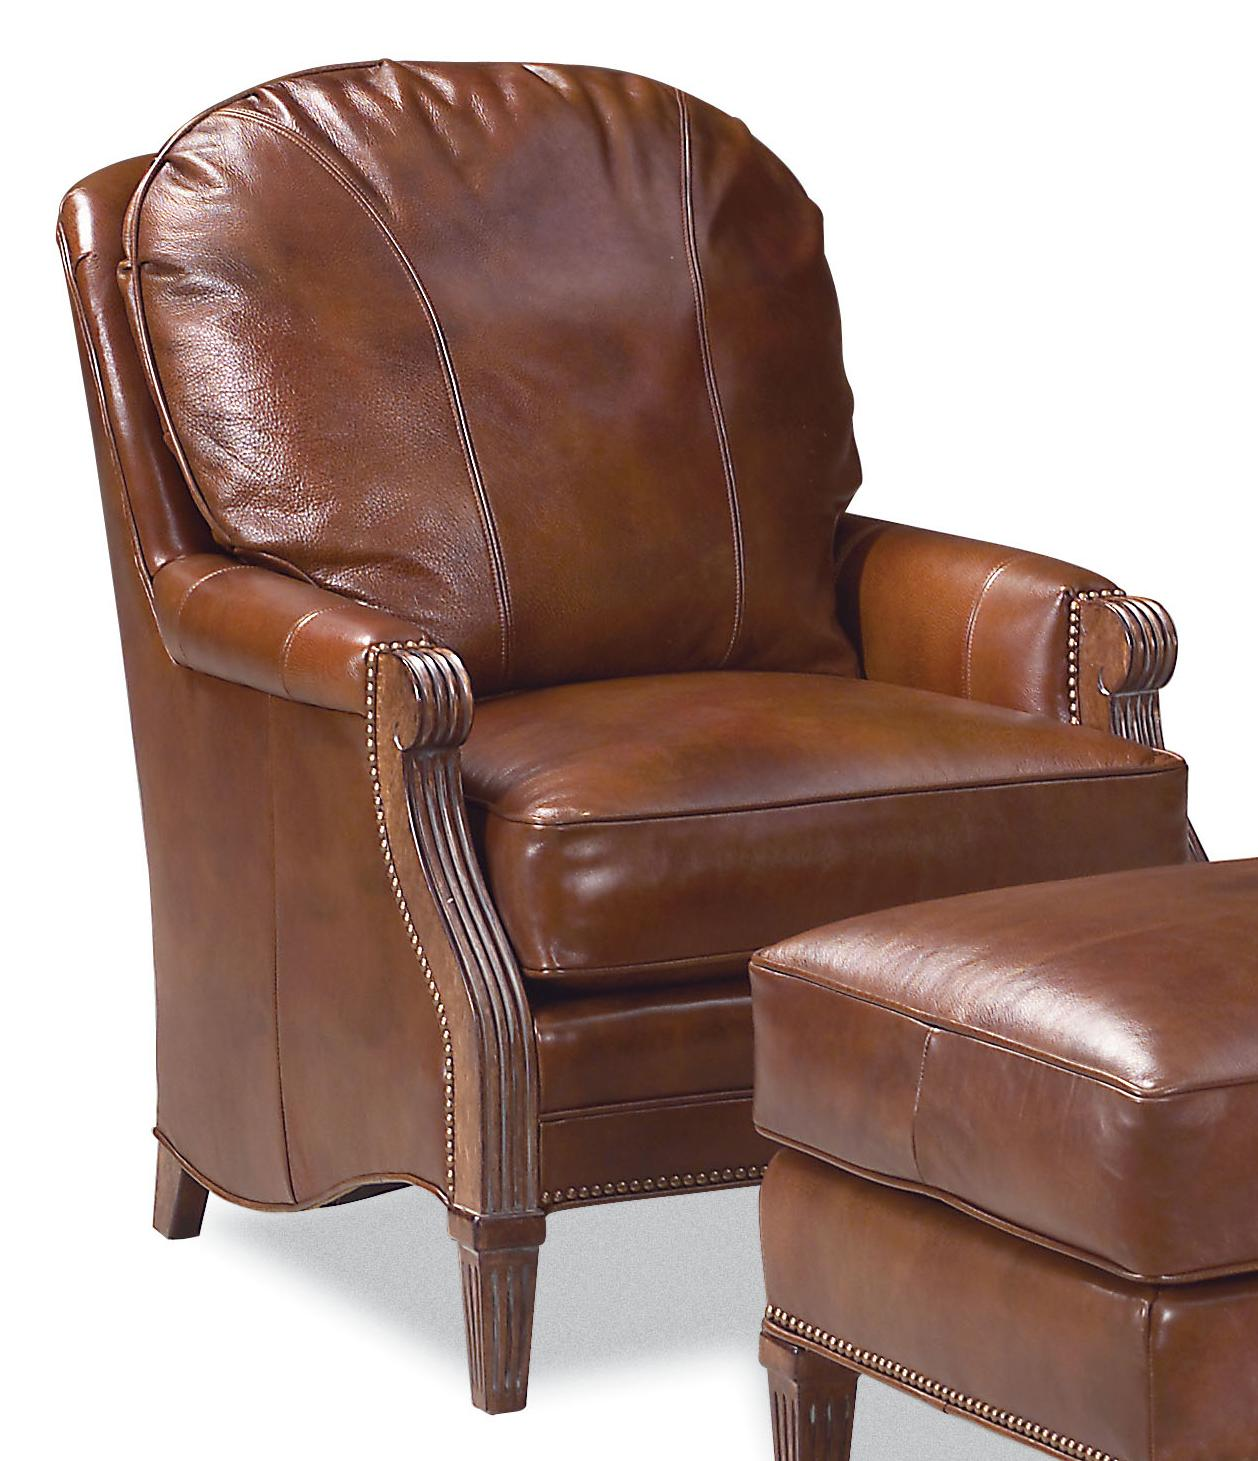 Fairfield Chairs Stationary Chair - Item Number: 1453-01